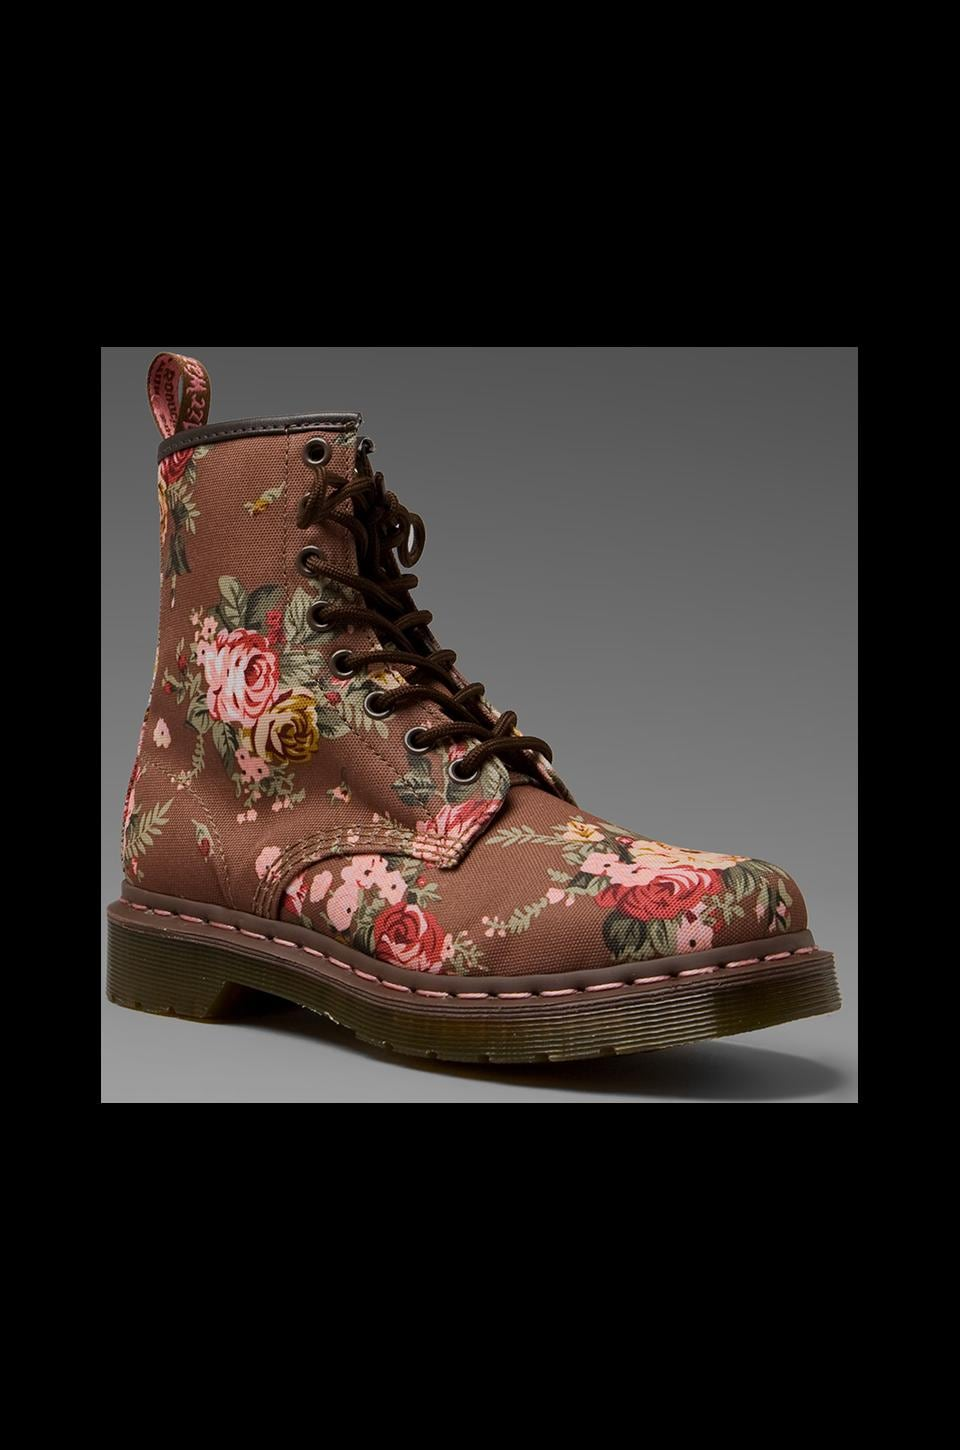 Dr. Martens 1460 8 Eye Boot in Taupe Victorian Flowers